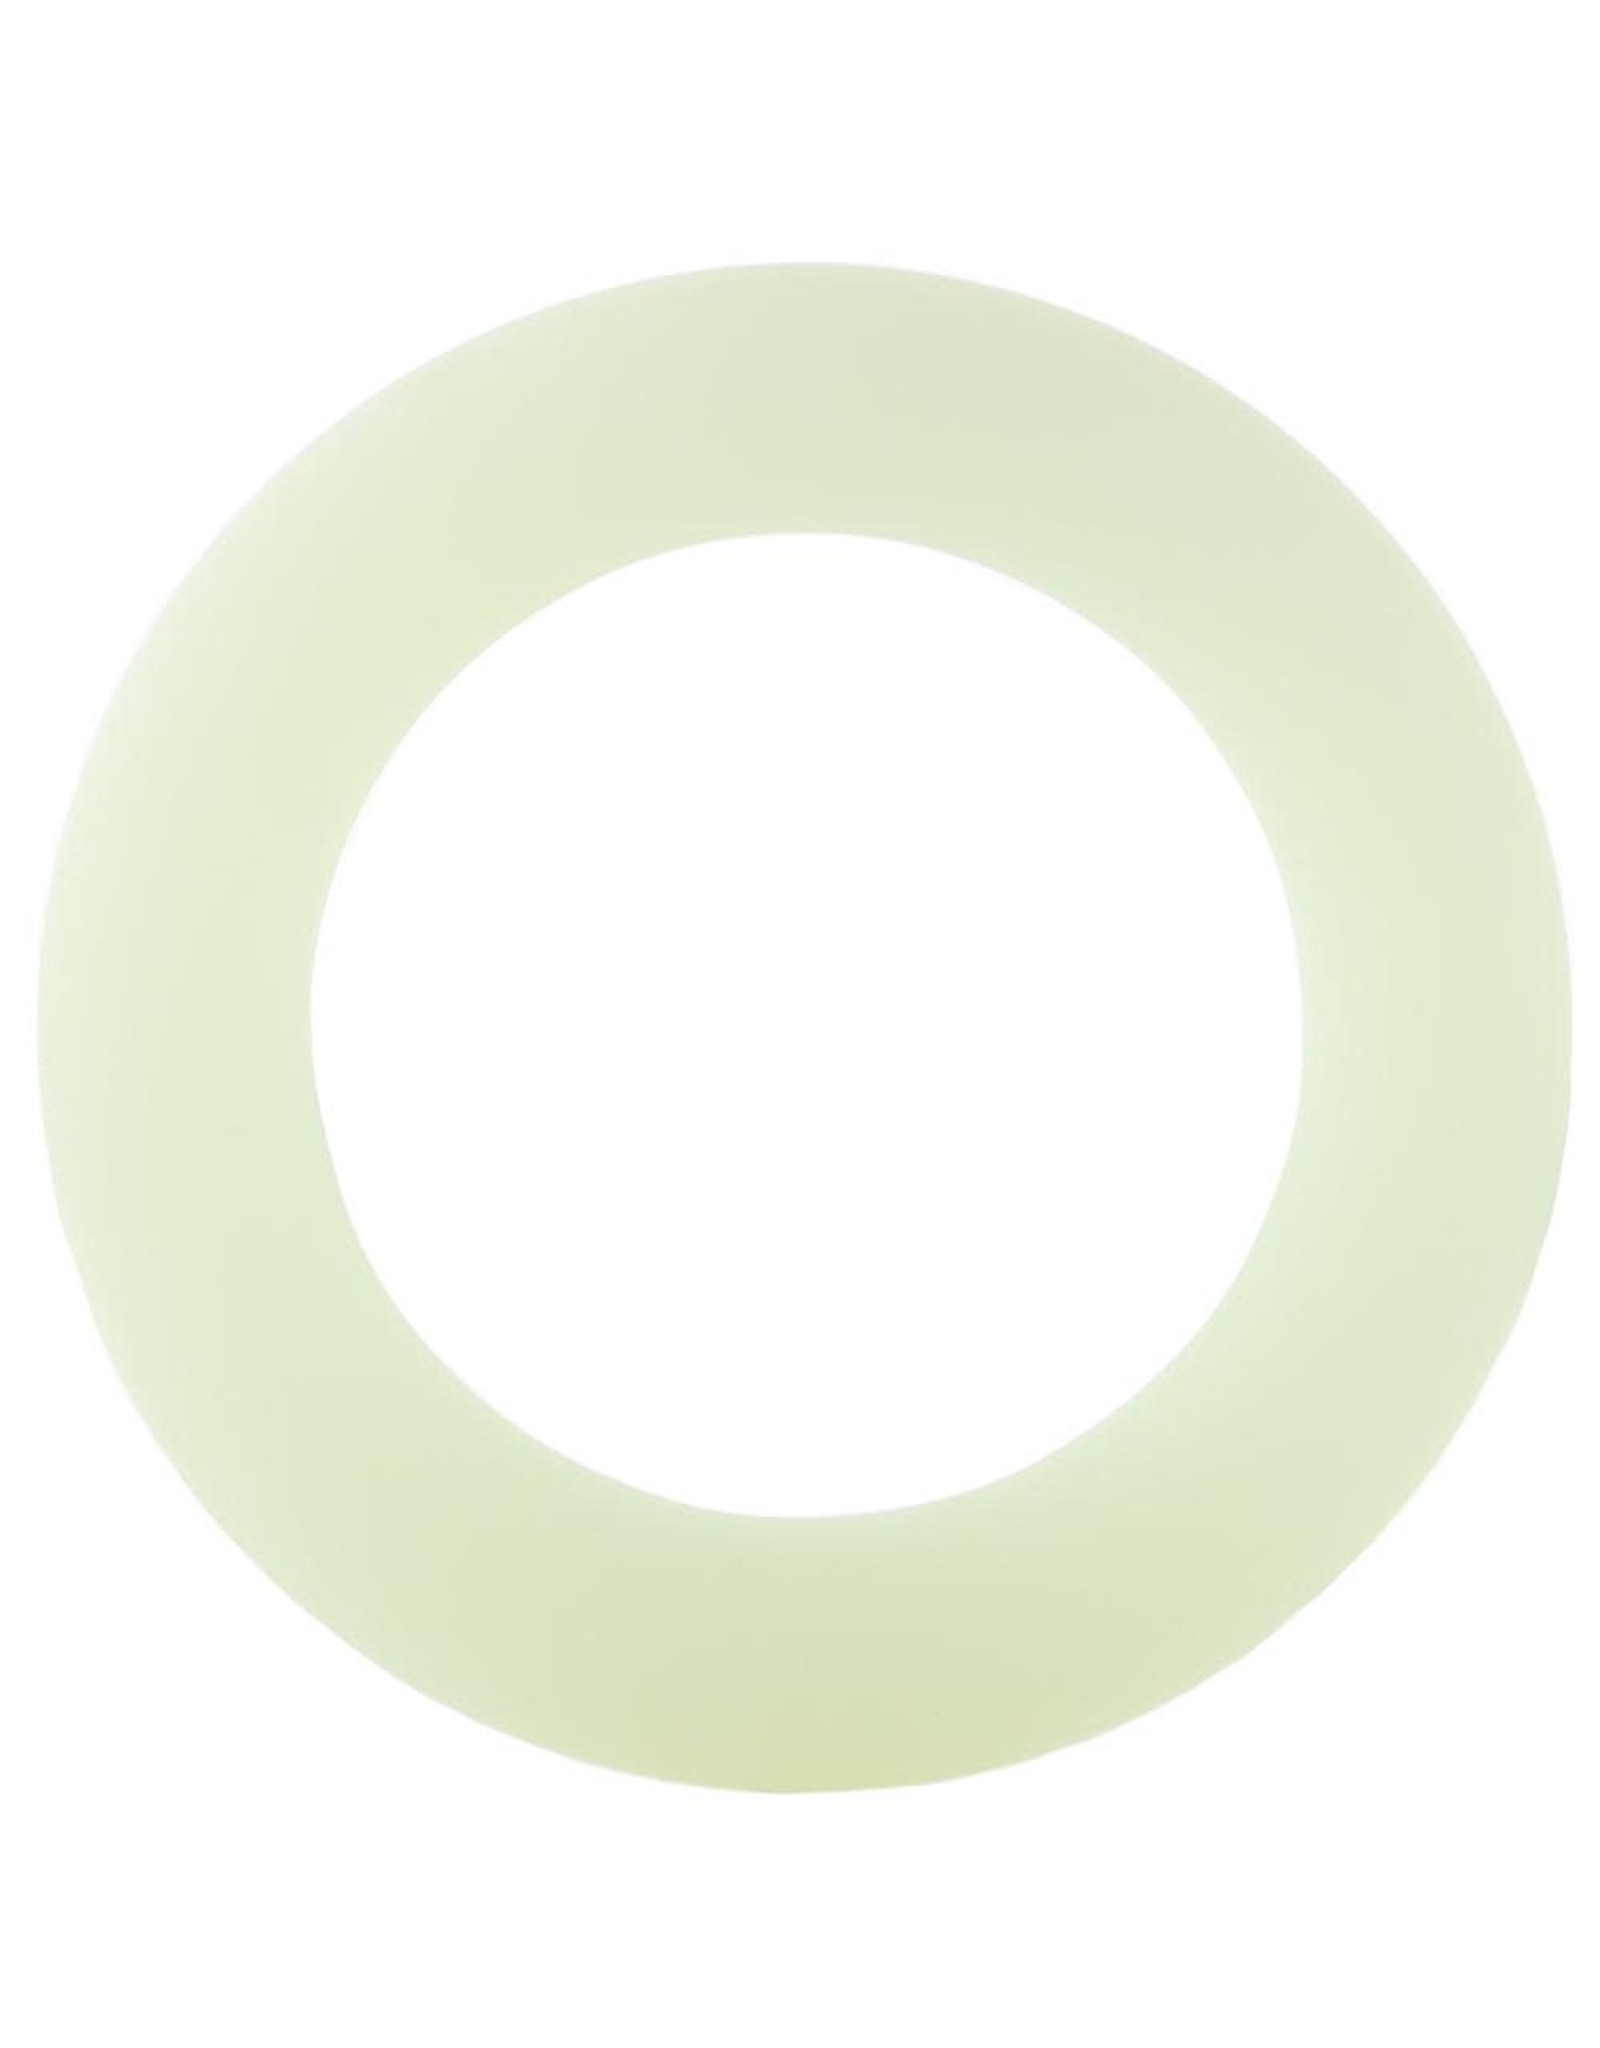 NSNOVELTIES Firefly Super Stretchable Halo Small Silicone Cock Ring (clear)